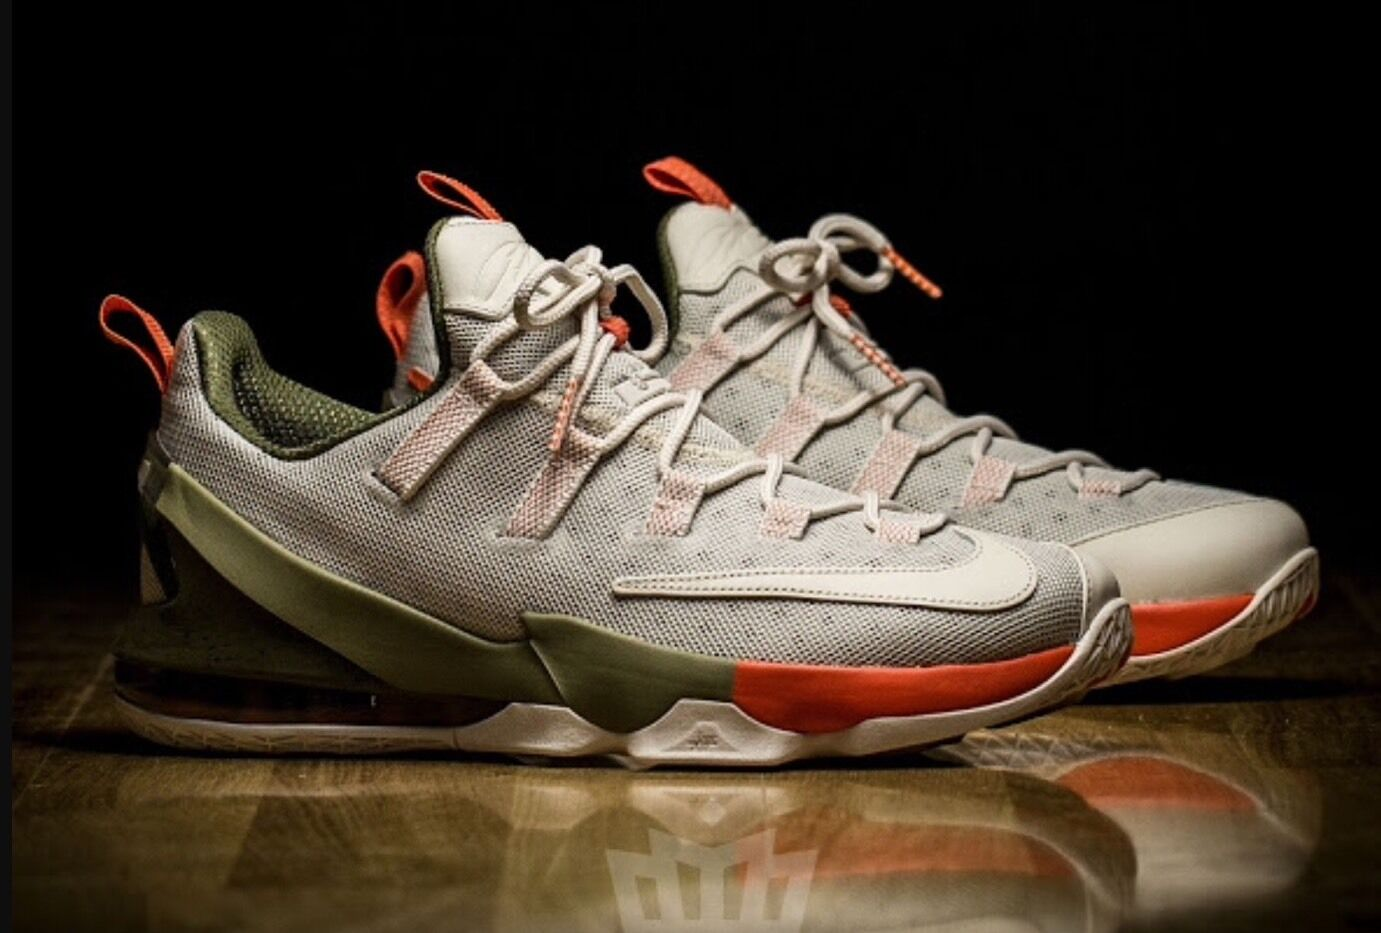 7b441abbd34 Nike Lebron XIII Low Limited Size 8 (849783 002) for sale online